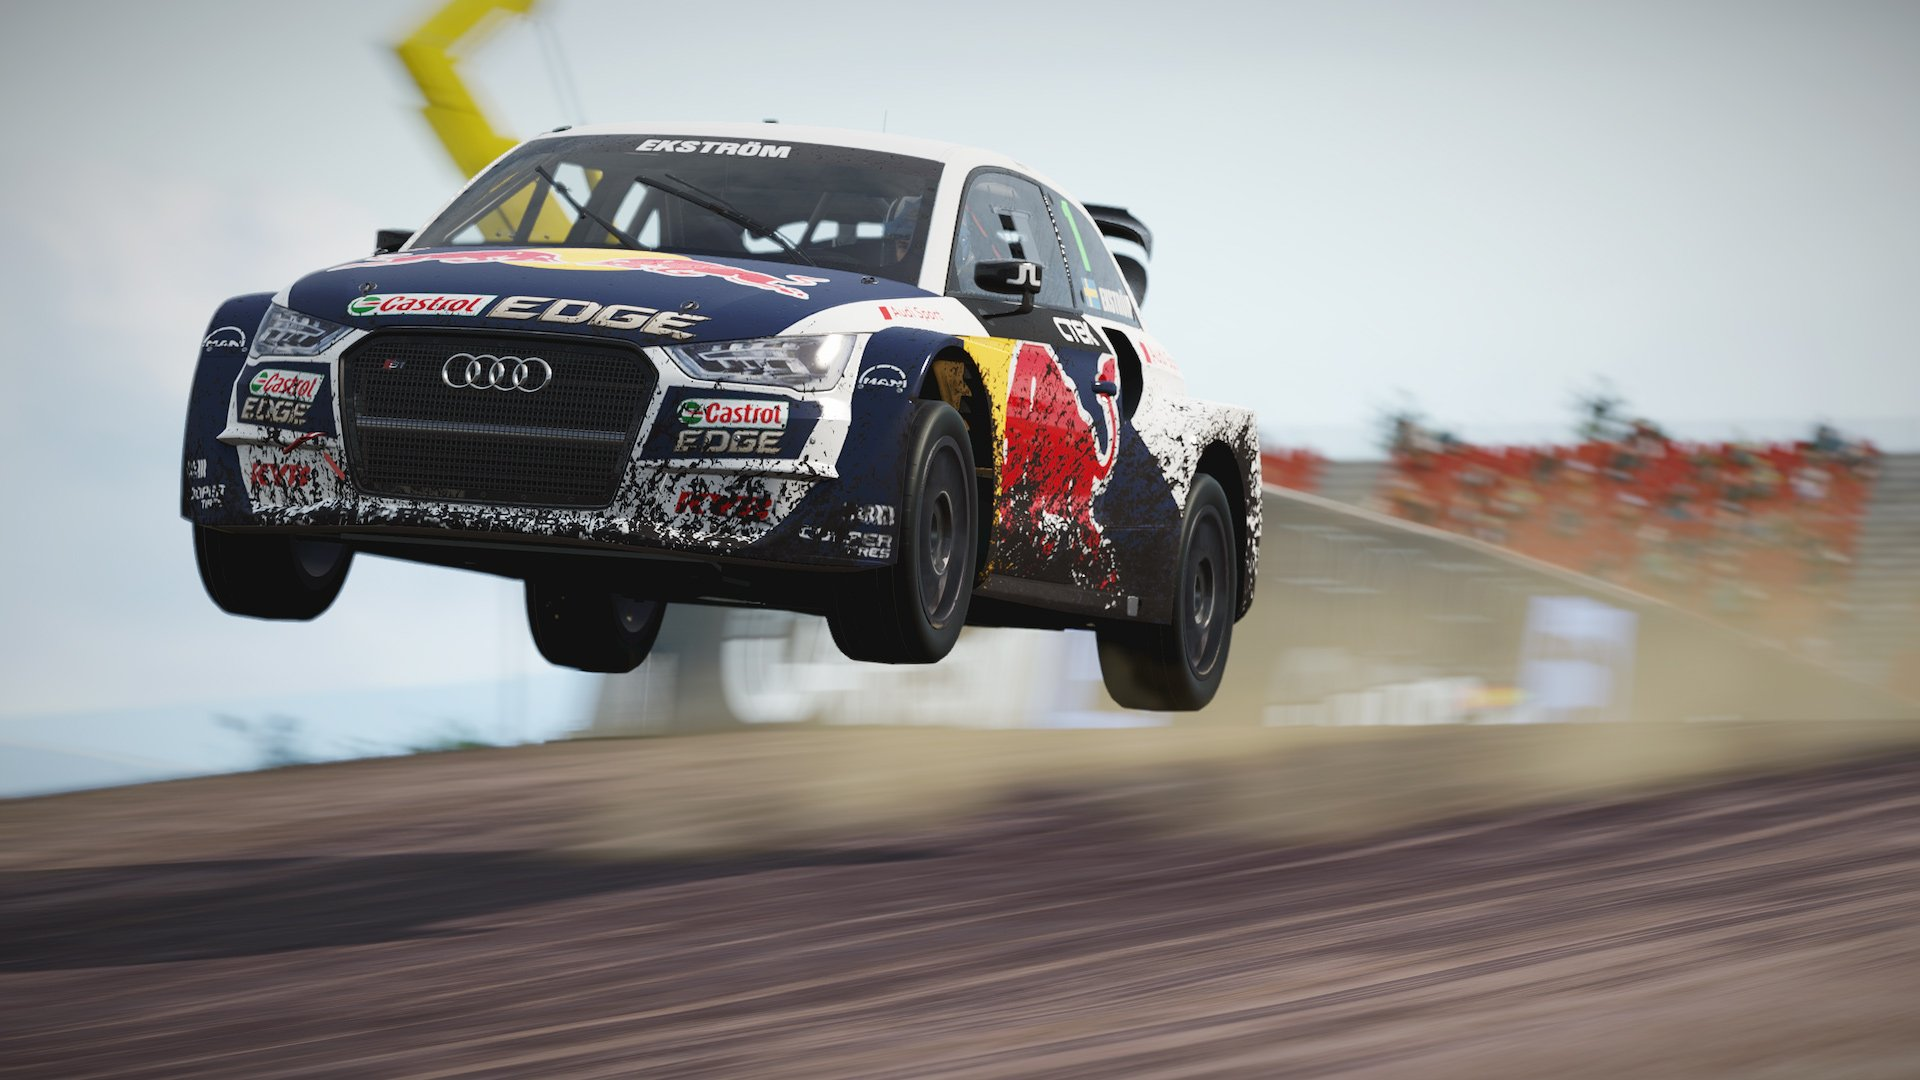 Project CARS 2 Fun Pack Audi S1